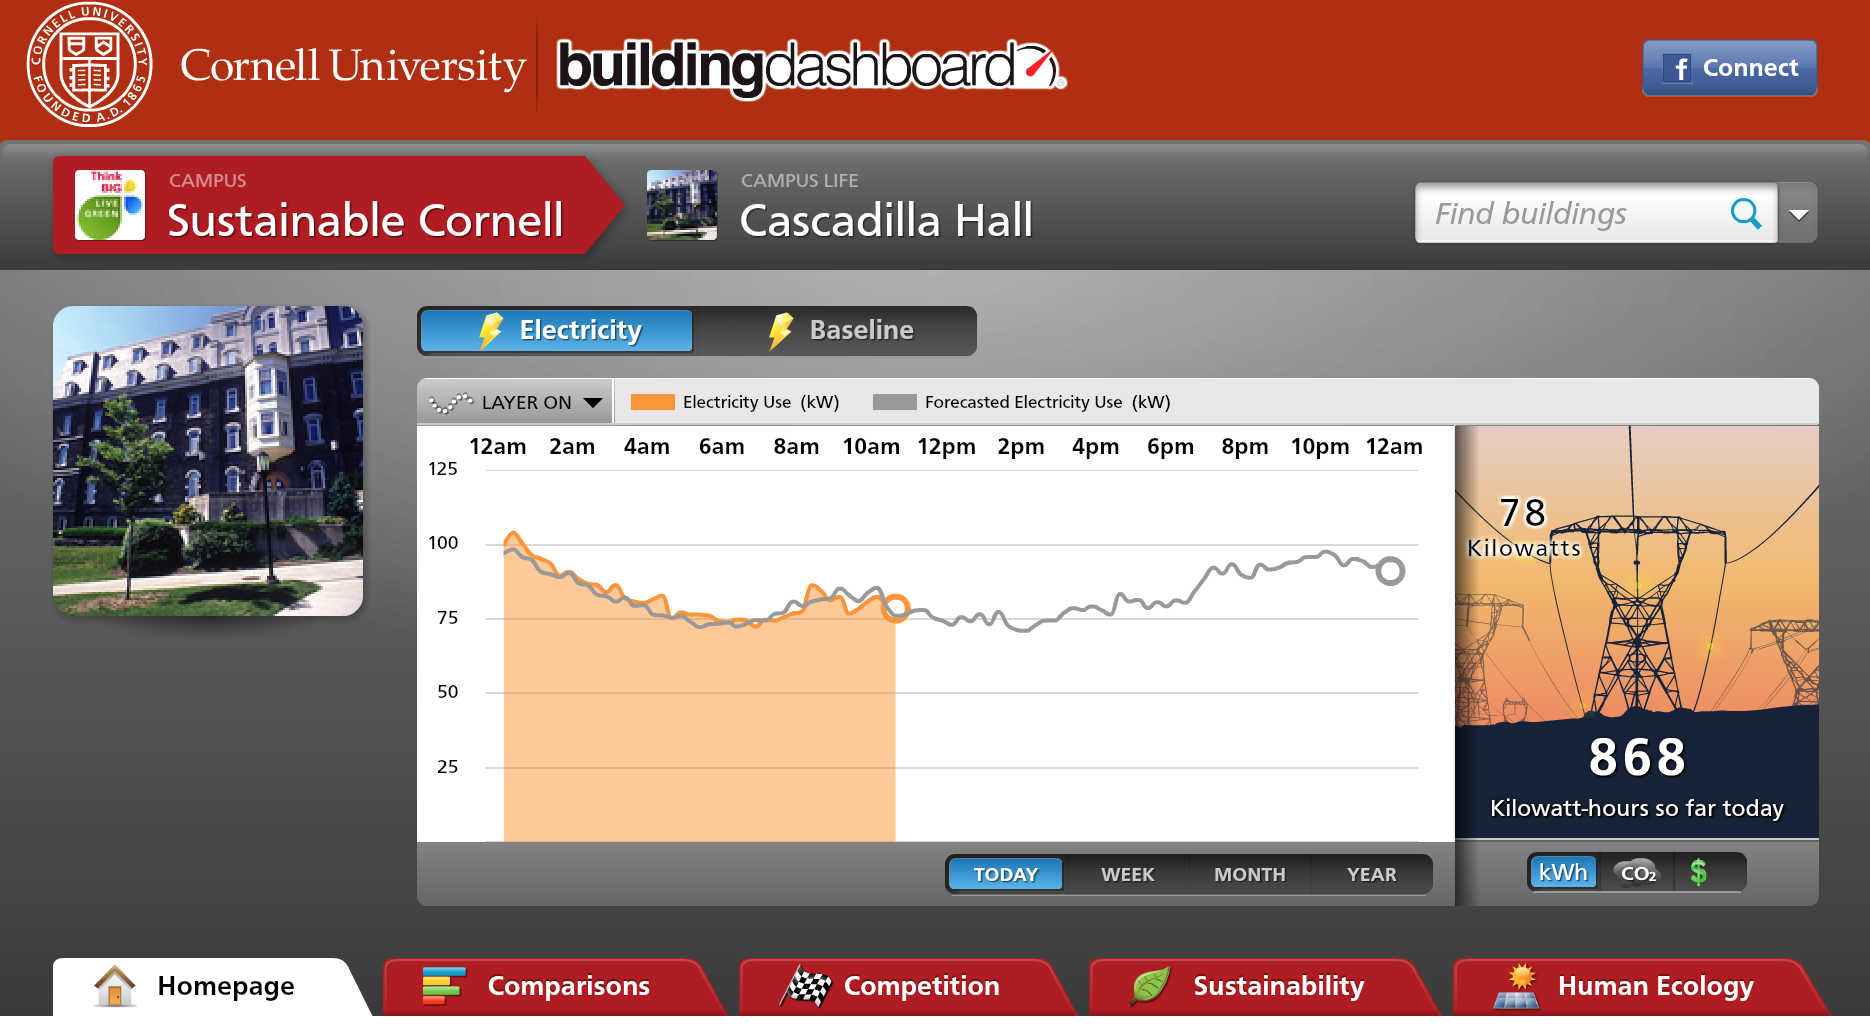 Screenshot of a daily reading of Cascadilla Hall from the Big Red Energy Scoreboard website. Compares current electricity usage to previous year's daily readings.